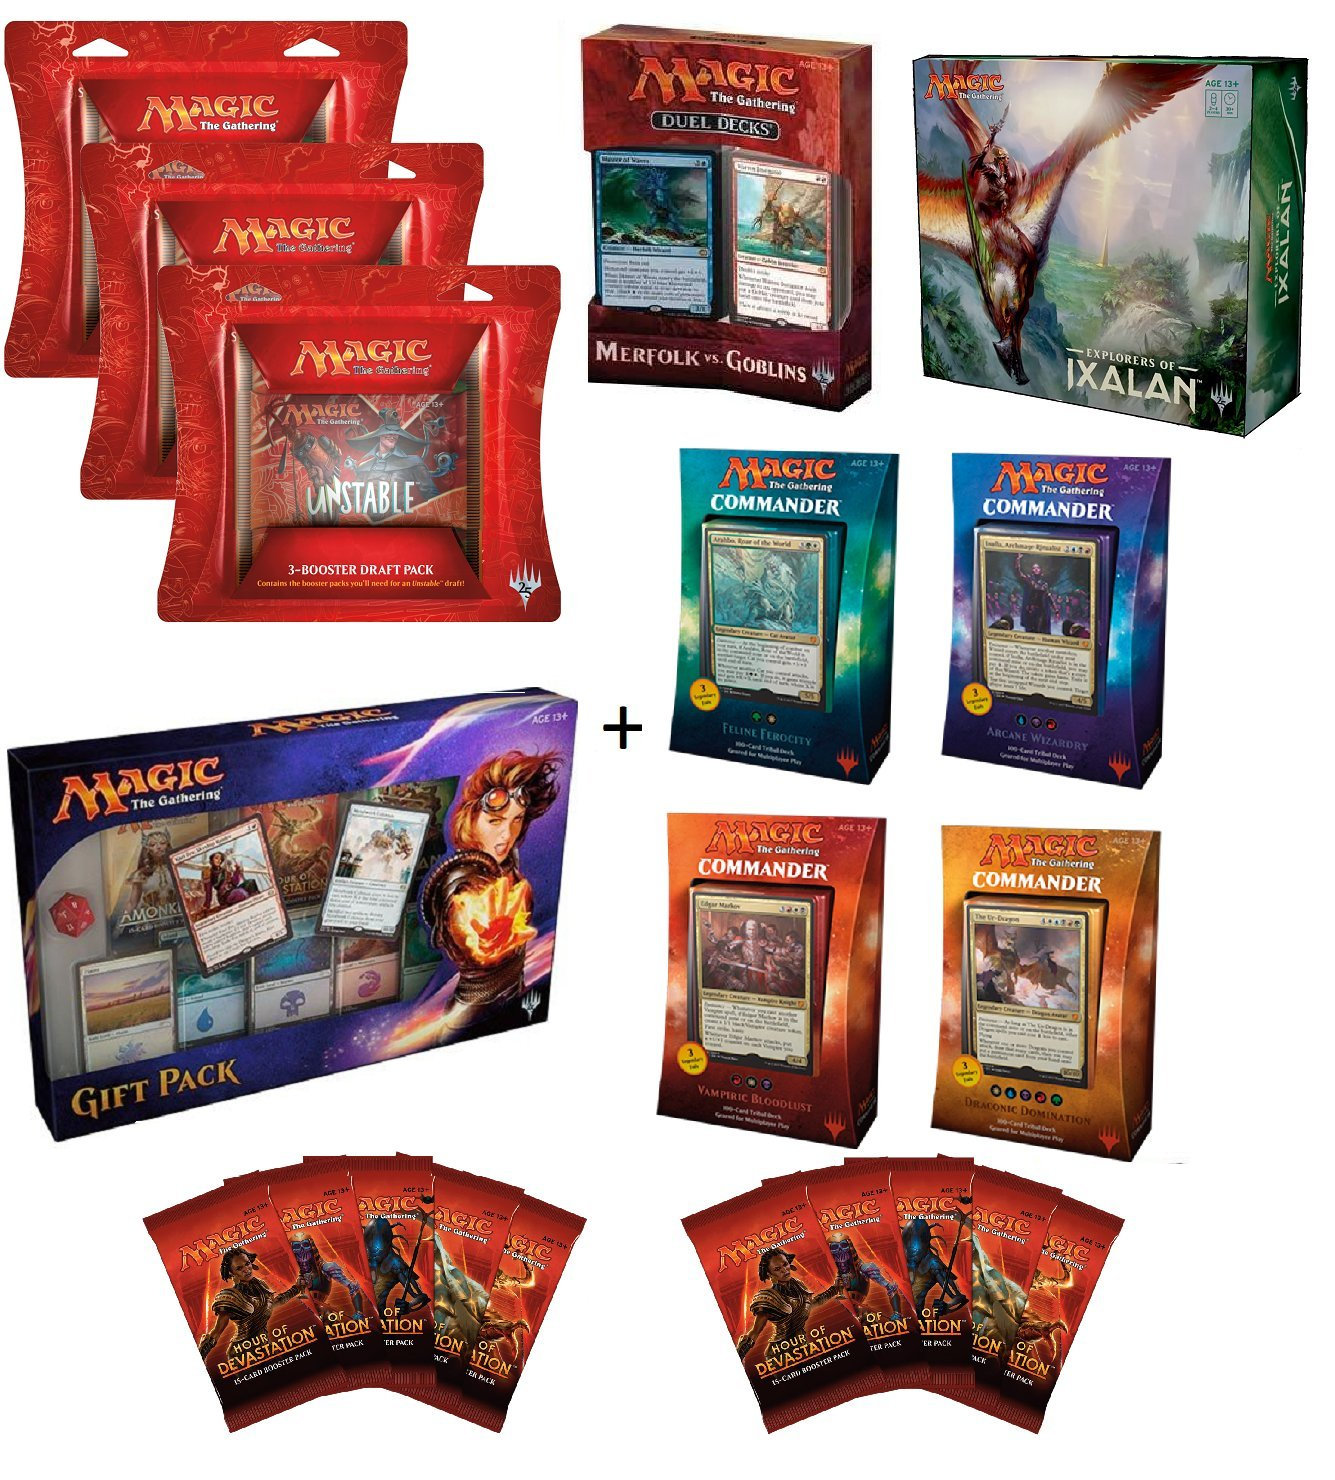 Magic the Gathering: MTG Ultimate Christmas Gift Set (4 2017 Commander Decks, Merfolk Vs Goblins Duel Decks, Explorers of Ixalan Deck Collection, 3 Unstable Draft Packs, 2017 Gift Box, 10 HOD Booster) by Wizards of the Coast